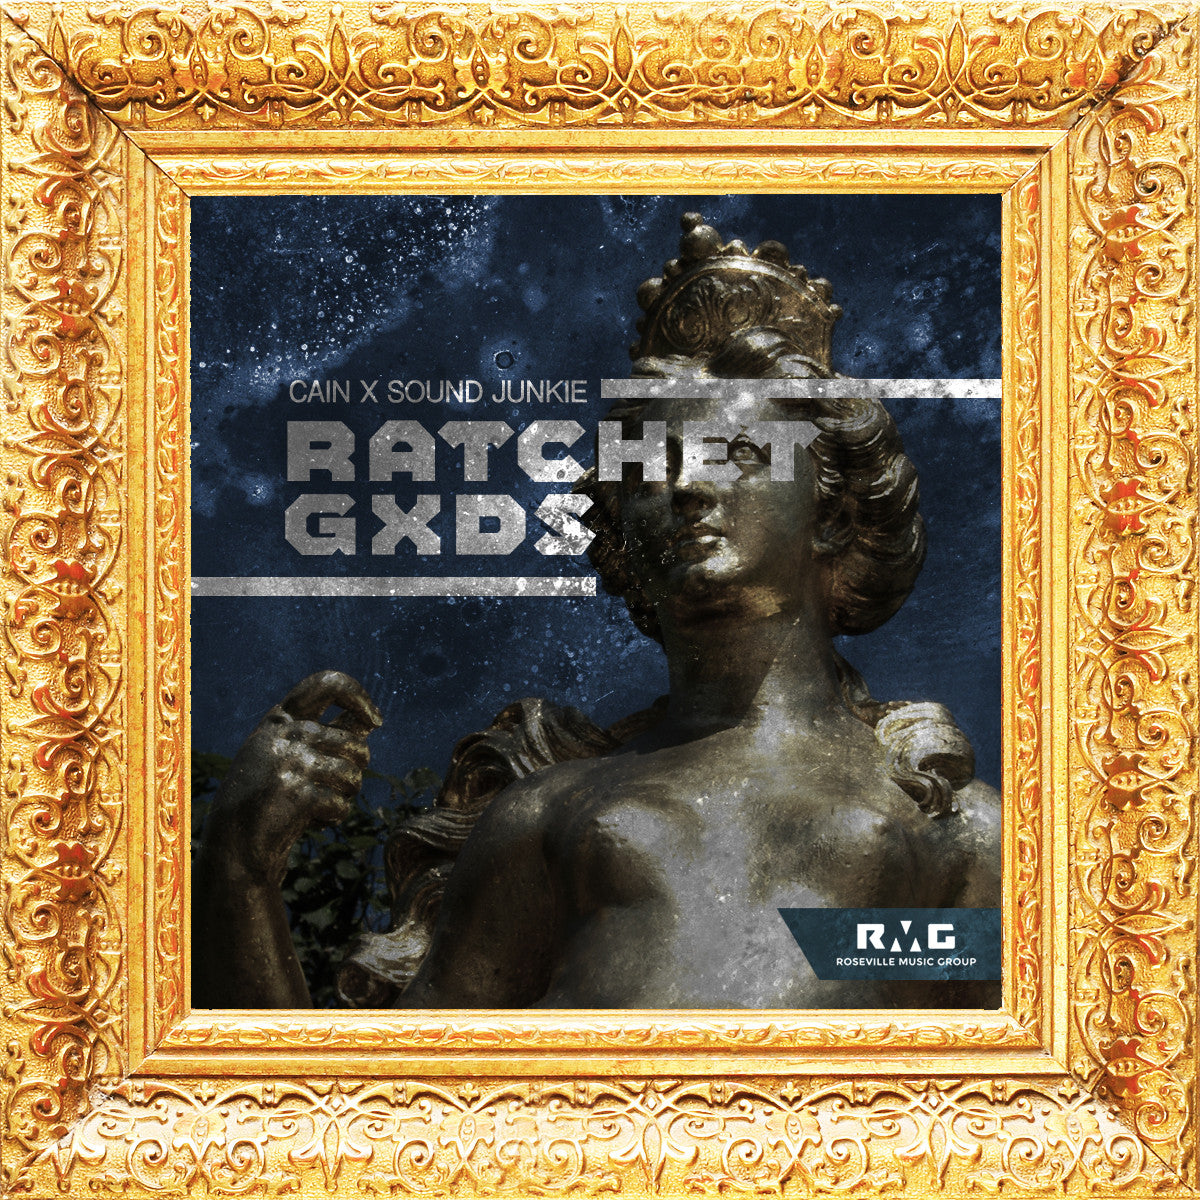 SINGLE - Cain & Sound Junkie - Ratchet GXDS